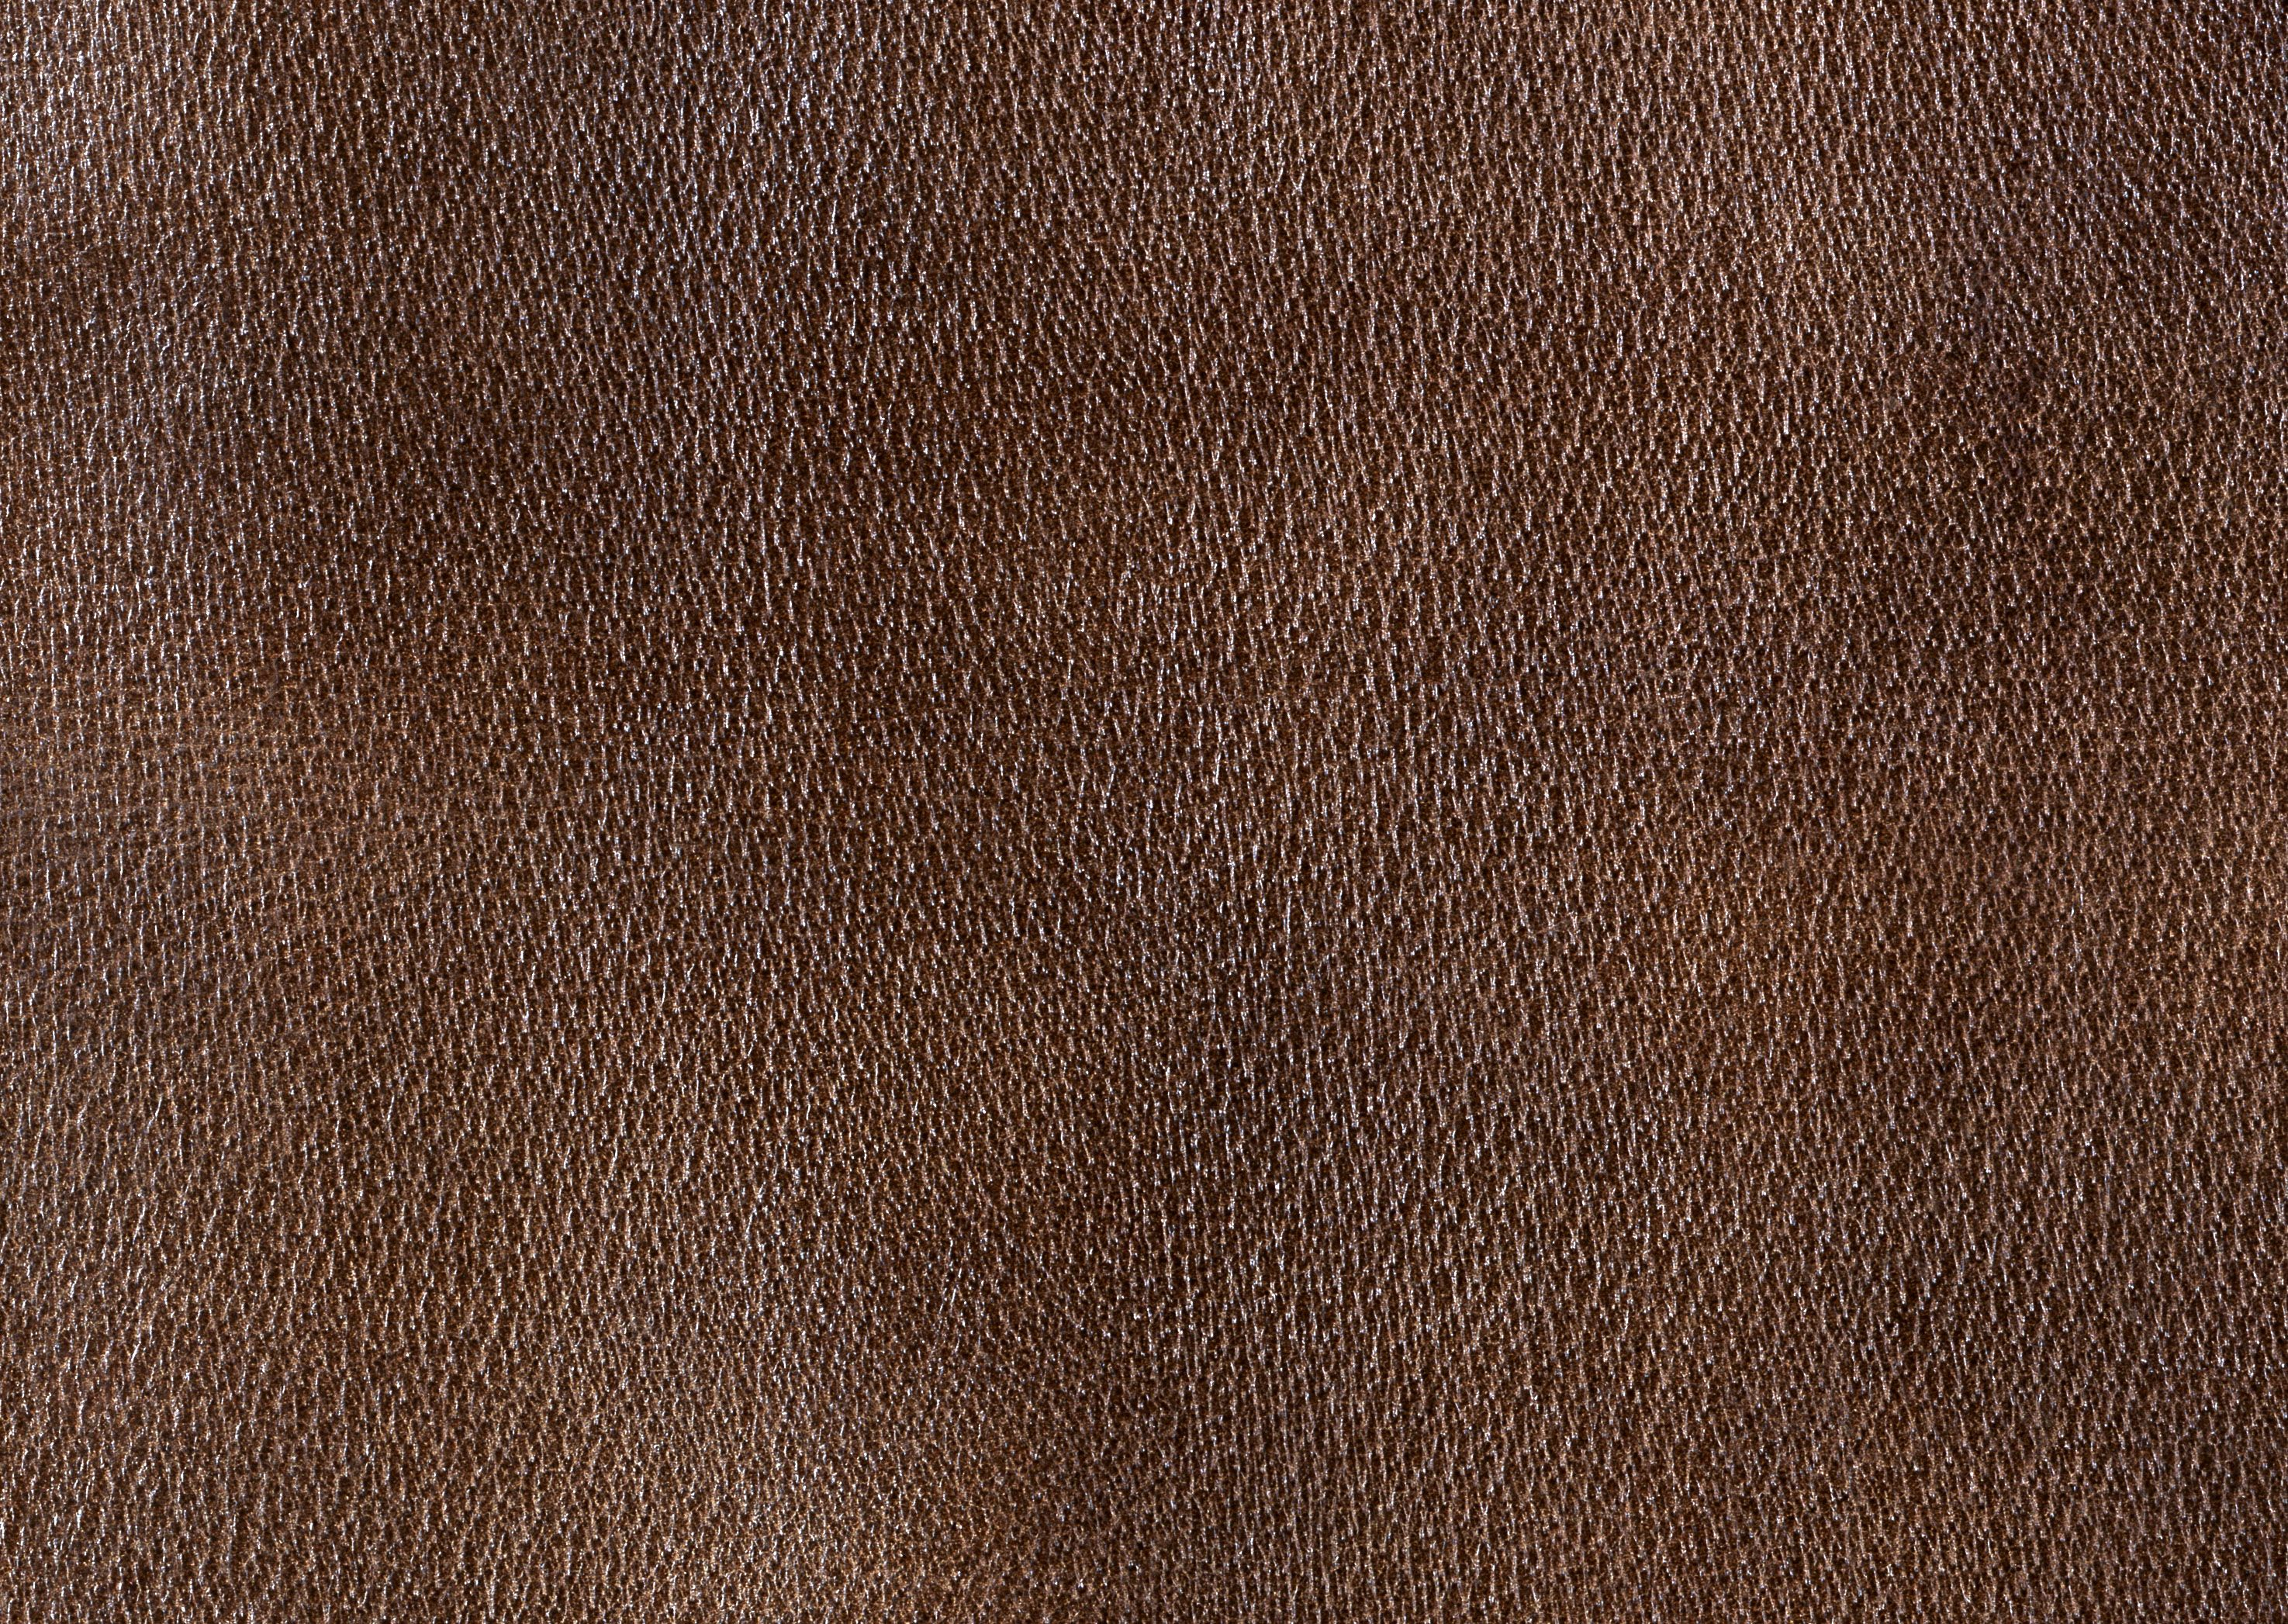 Brown Leather Big Textures Background Image Free Picture Leather Download Textured Background Leather Texture Background Images